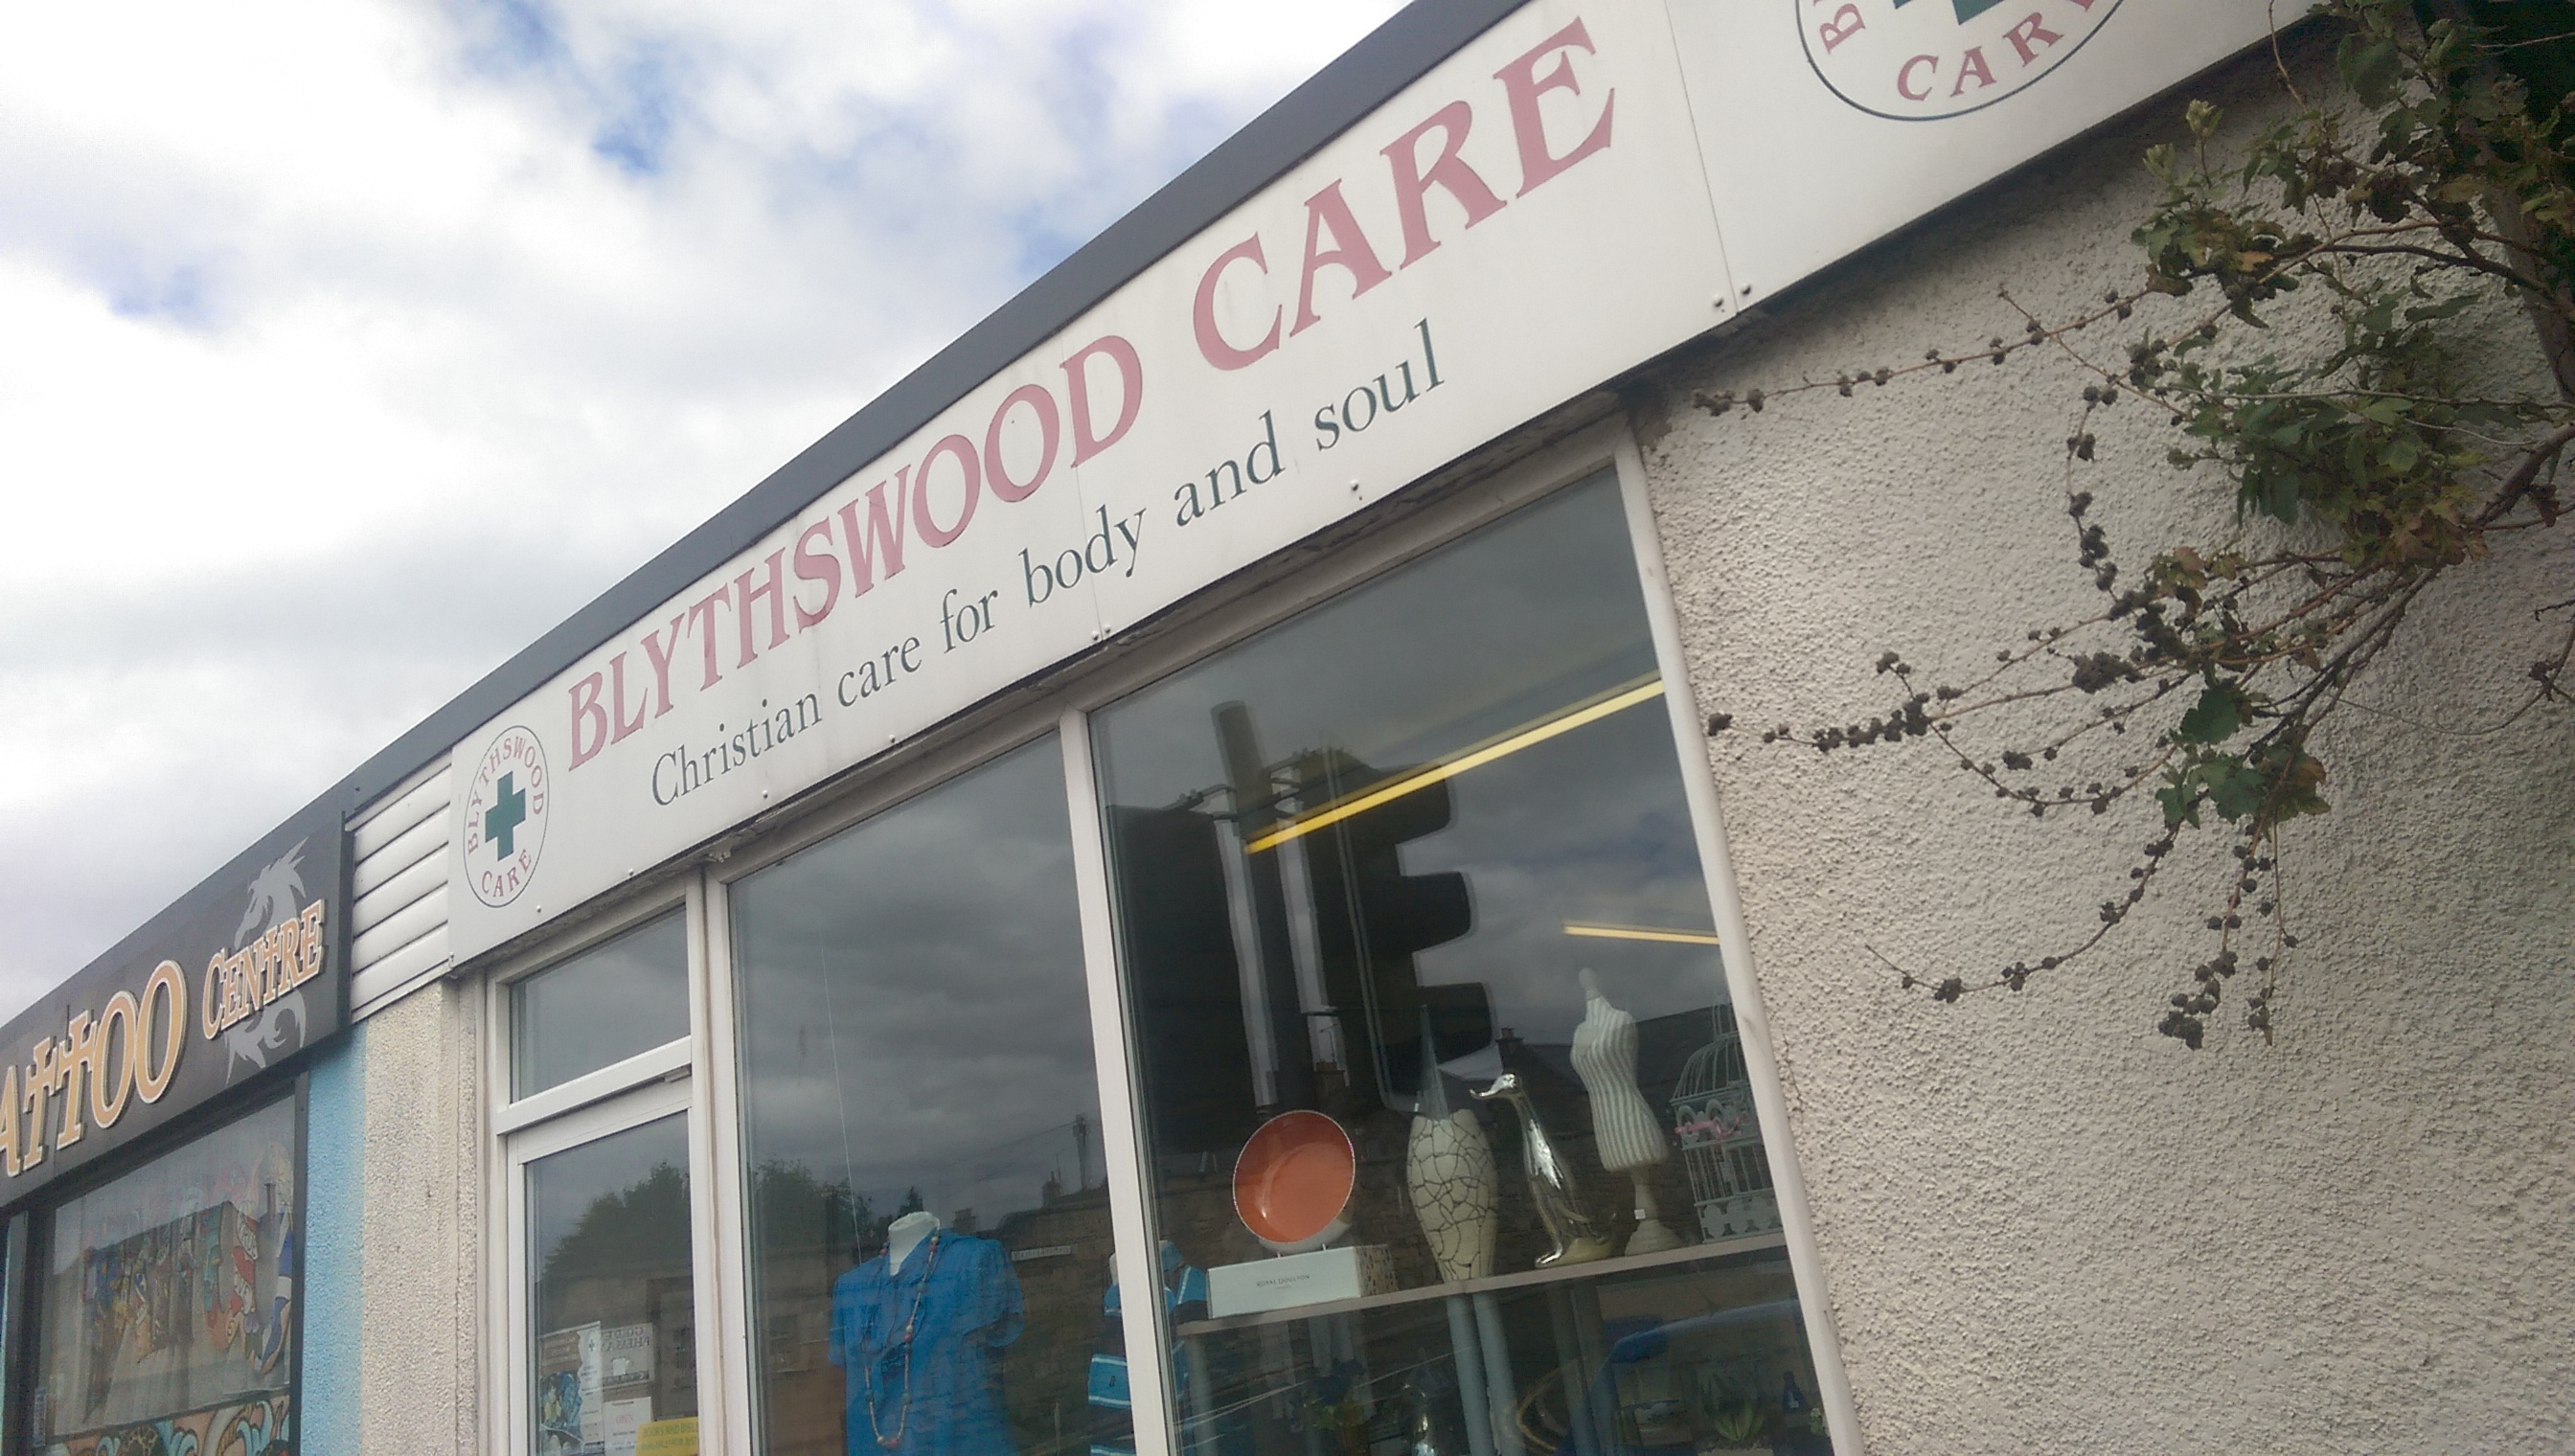 A charity tin containing about £20 was stolen during a break-in at Blythswood Care charity shop.